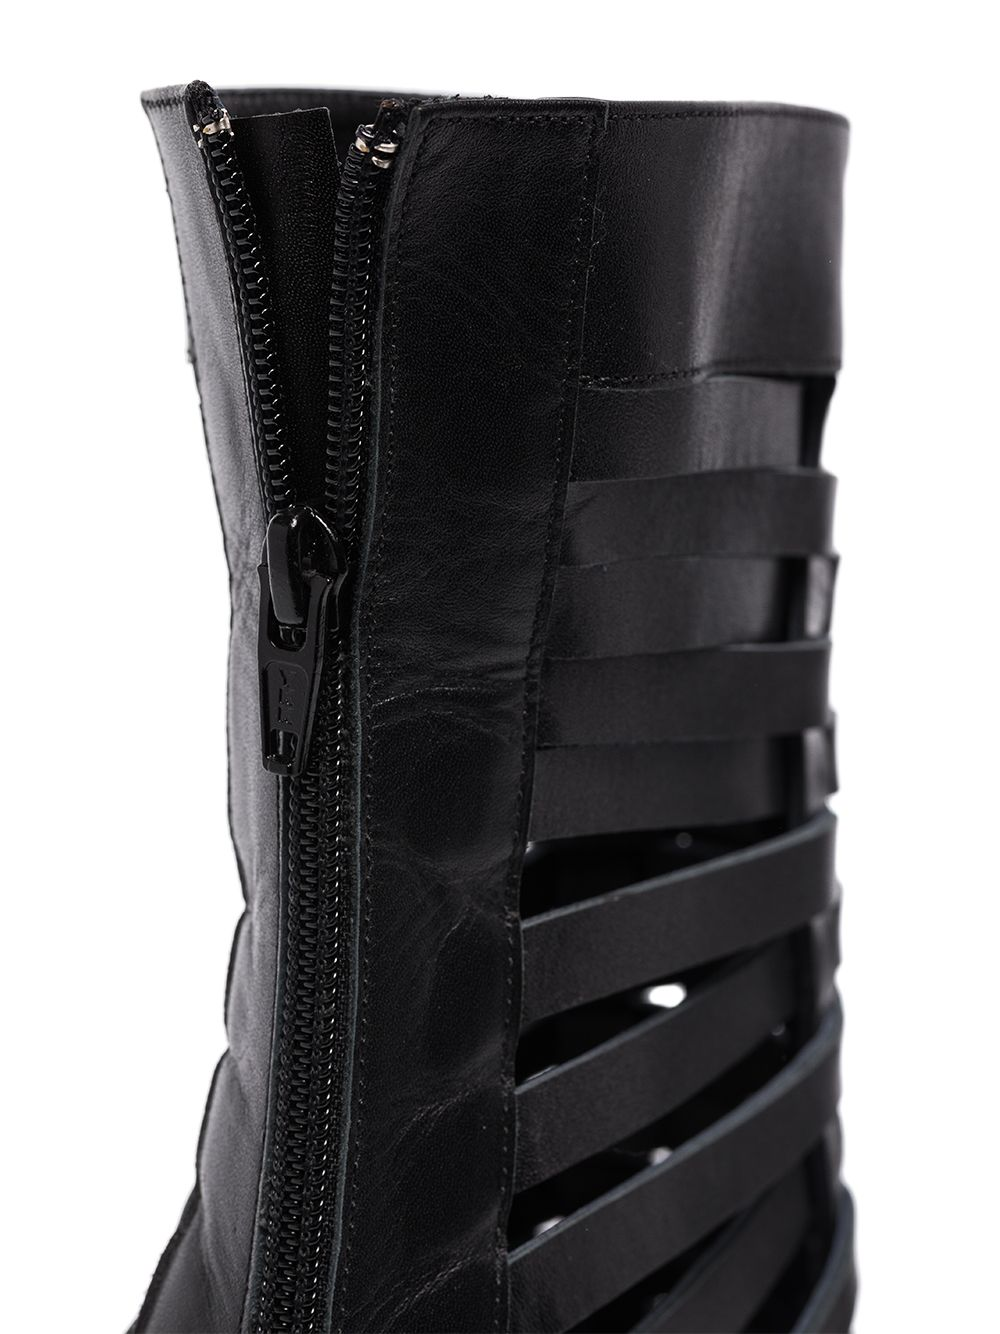 Materiel 75mm woven leather ankle boots - Black